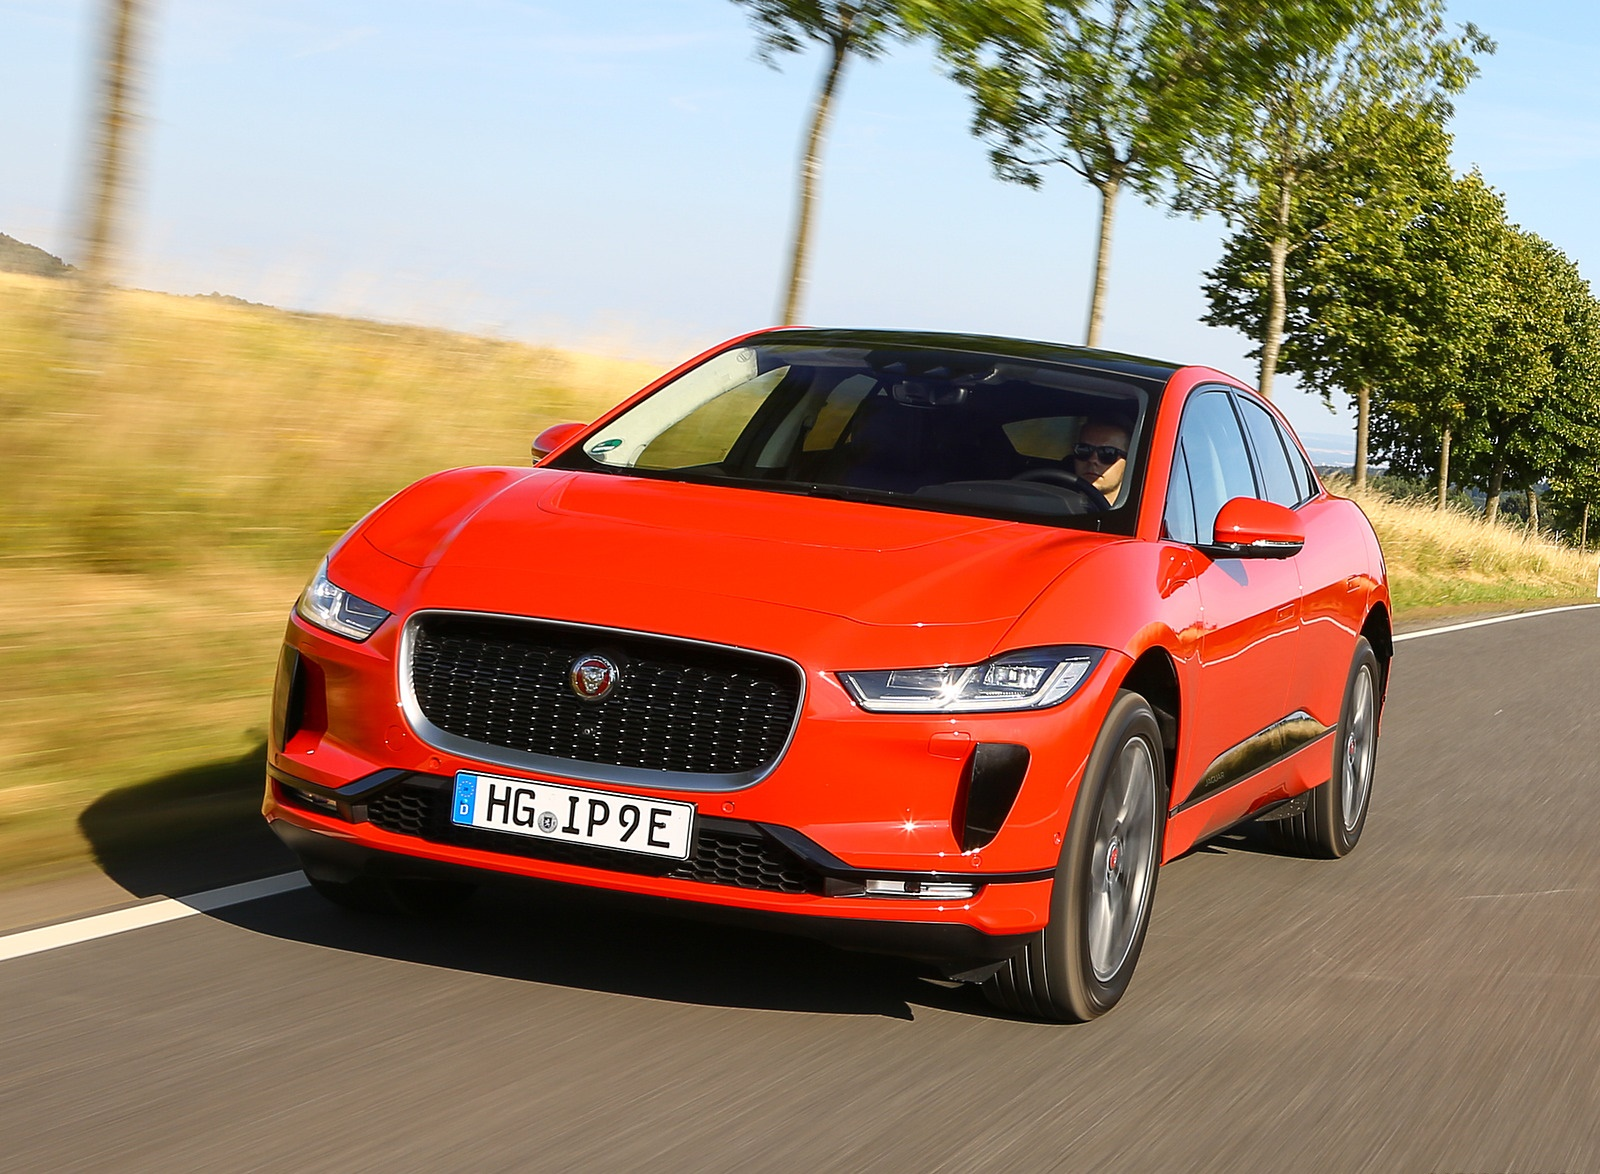 2019 Jaguar I-PACE EV400 AWD HSE First Edition (Color: Photon Red) Front Wallpapers (14)